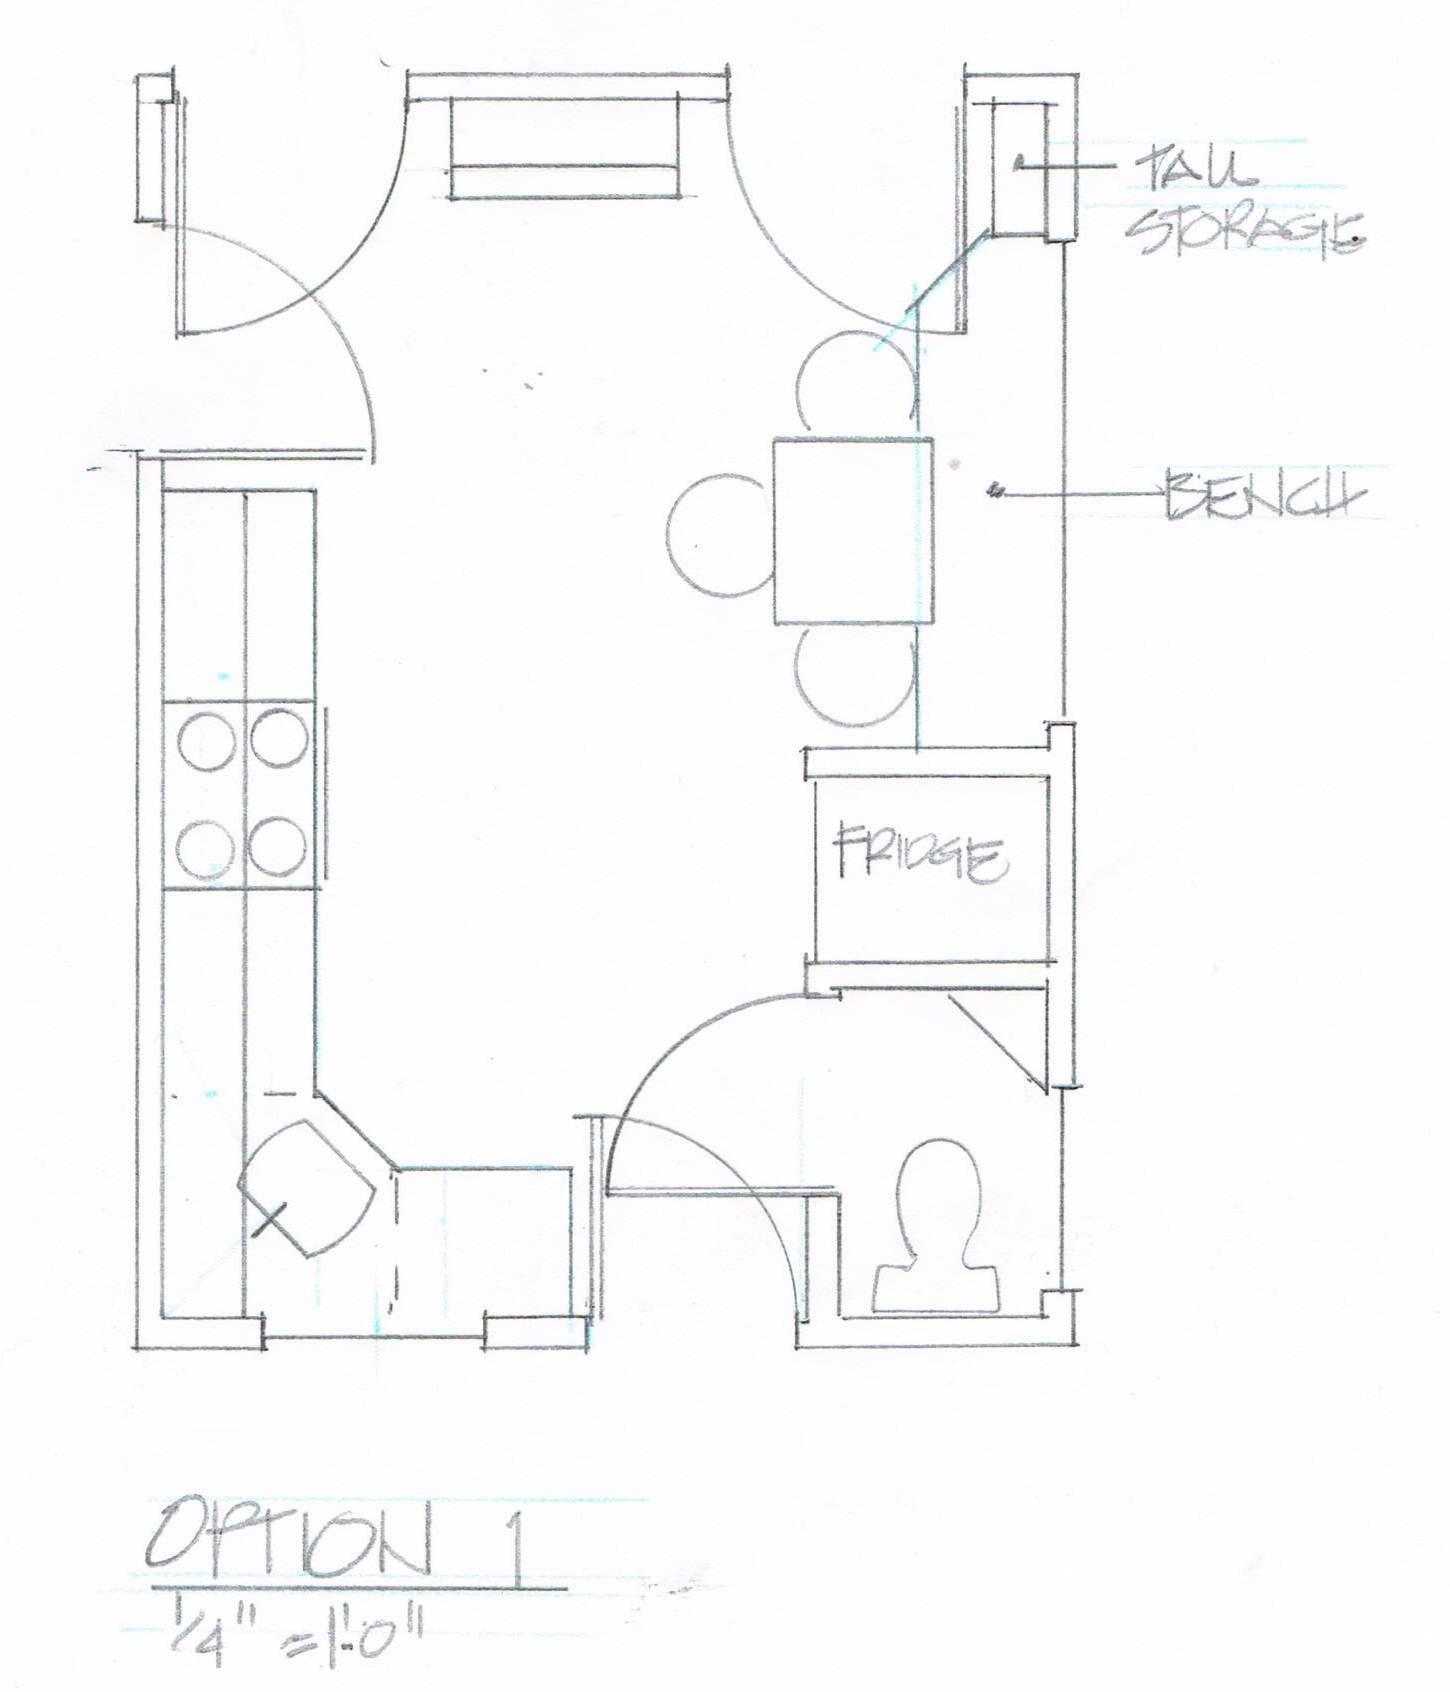 Kitchen Designer Tool Kitchen Design Drawing At Getdrawings Free For Personal Use